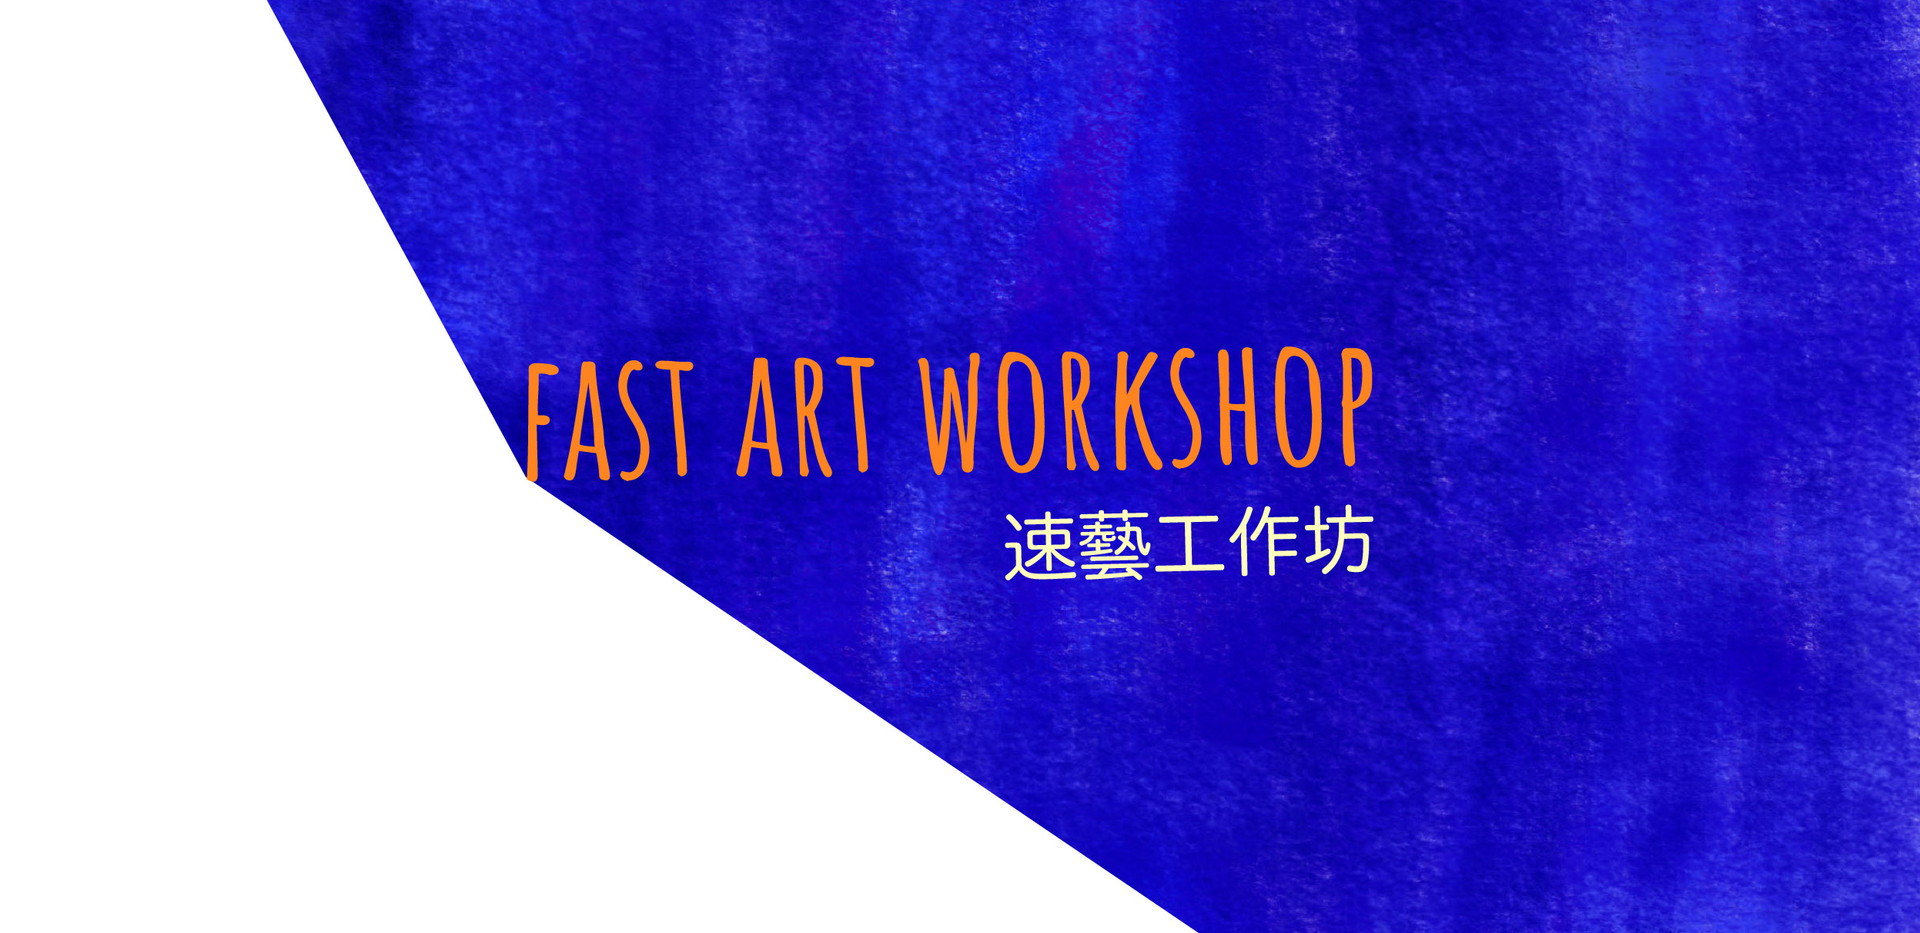 Fast Art Workshop by Bing Lee